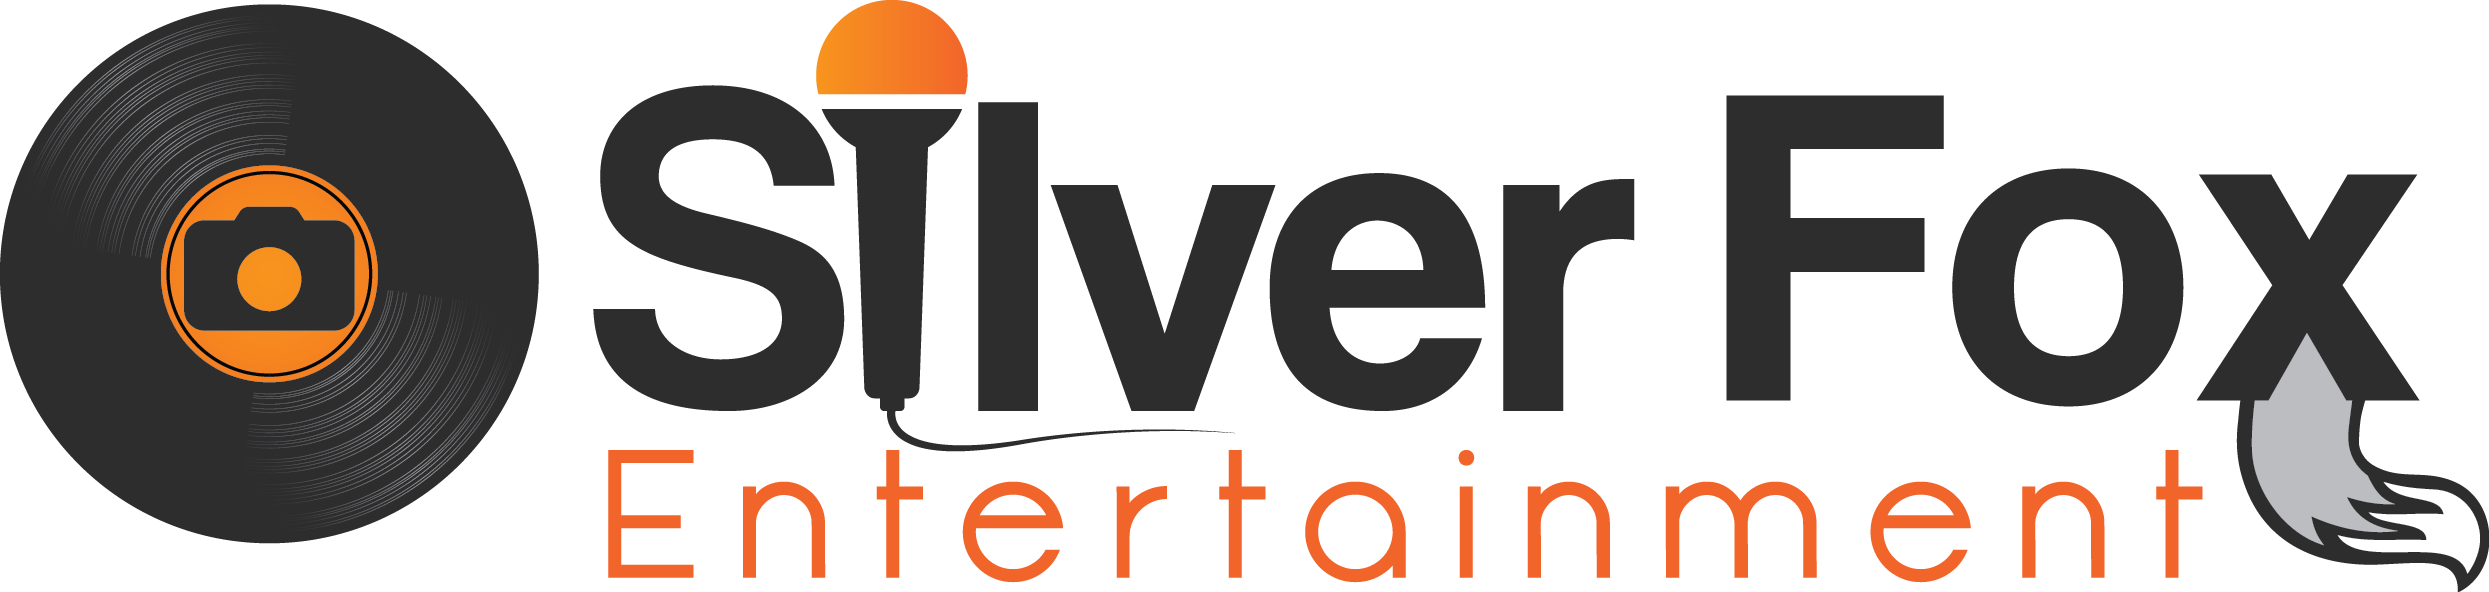 Silver Fox Entertainment